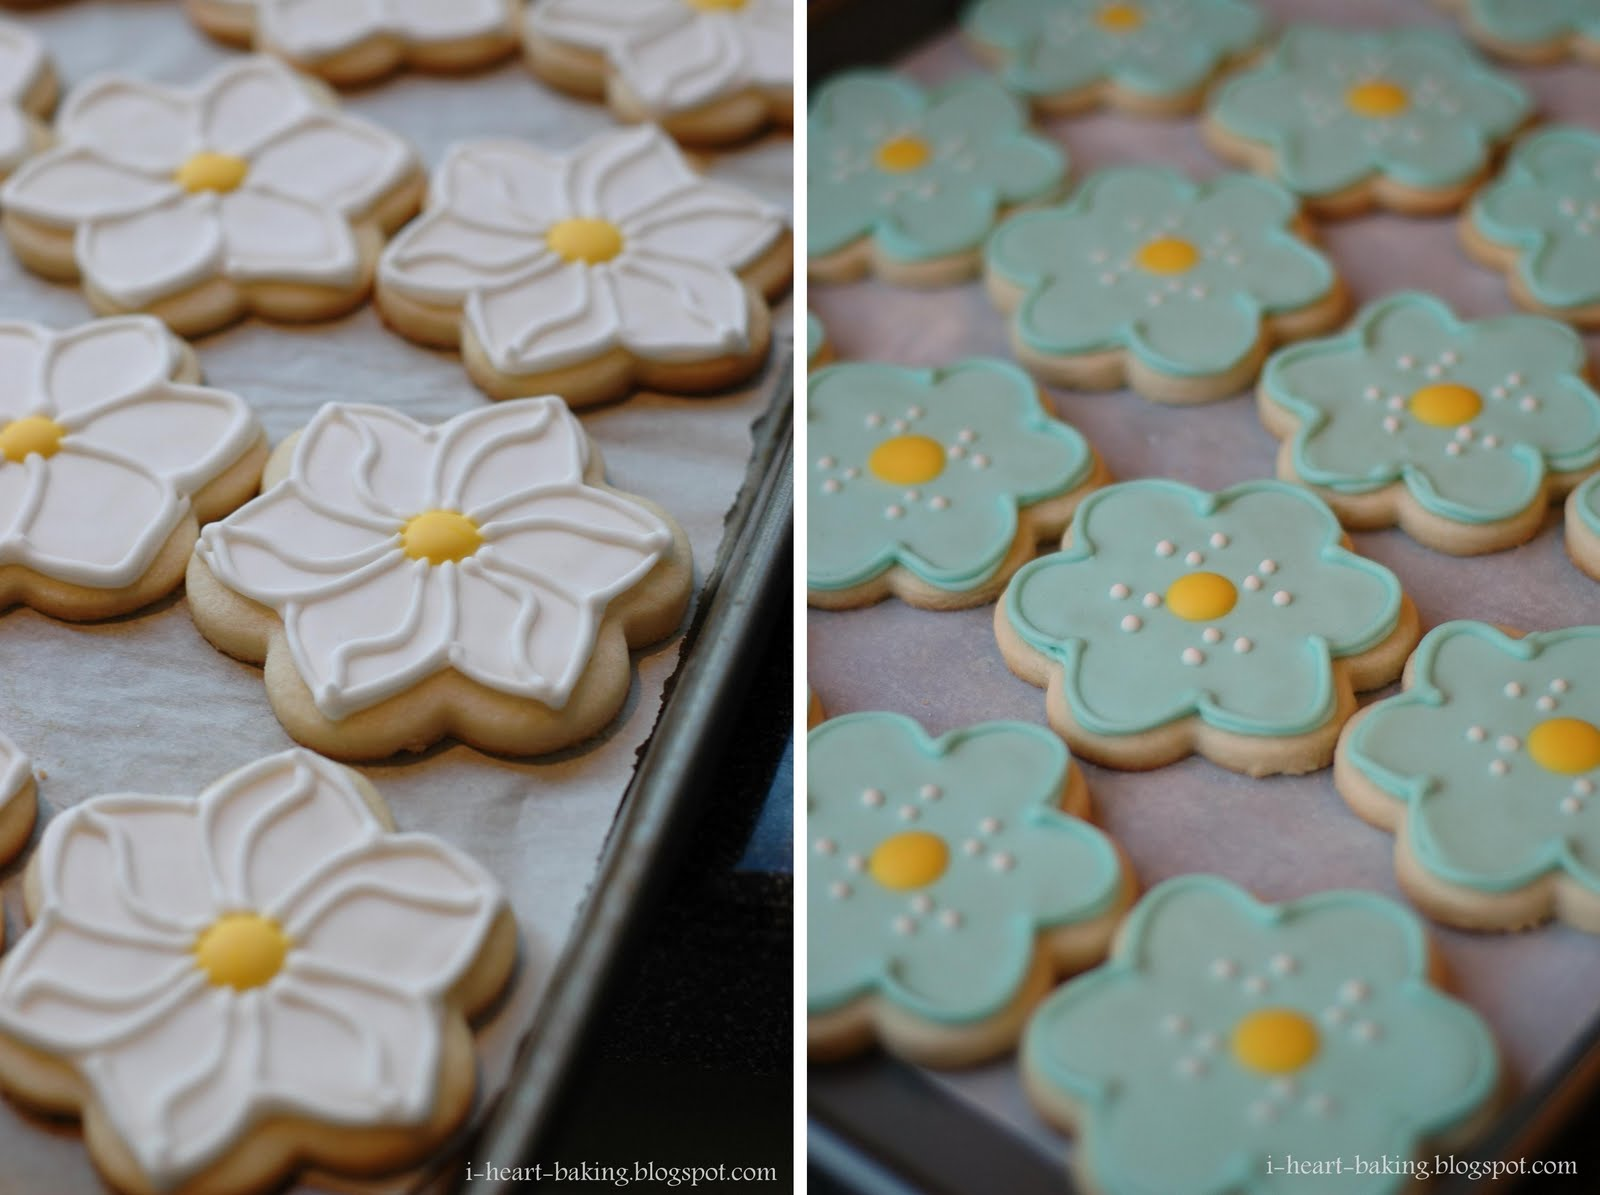 heart baking!: flower sugar cookies with royal icing